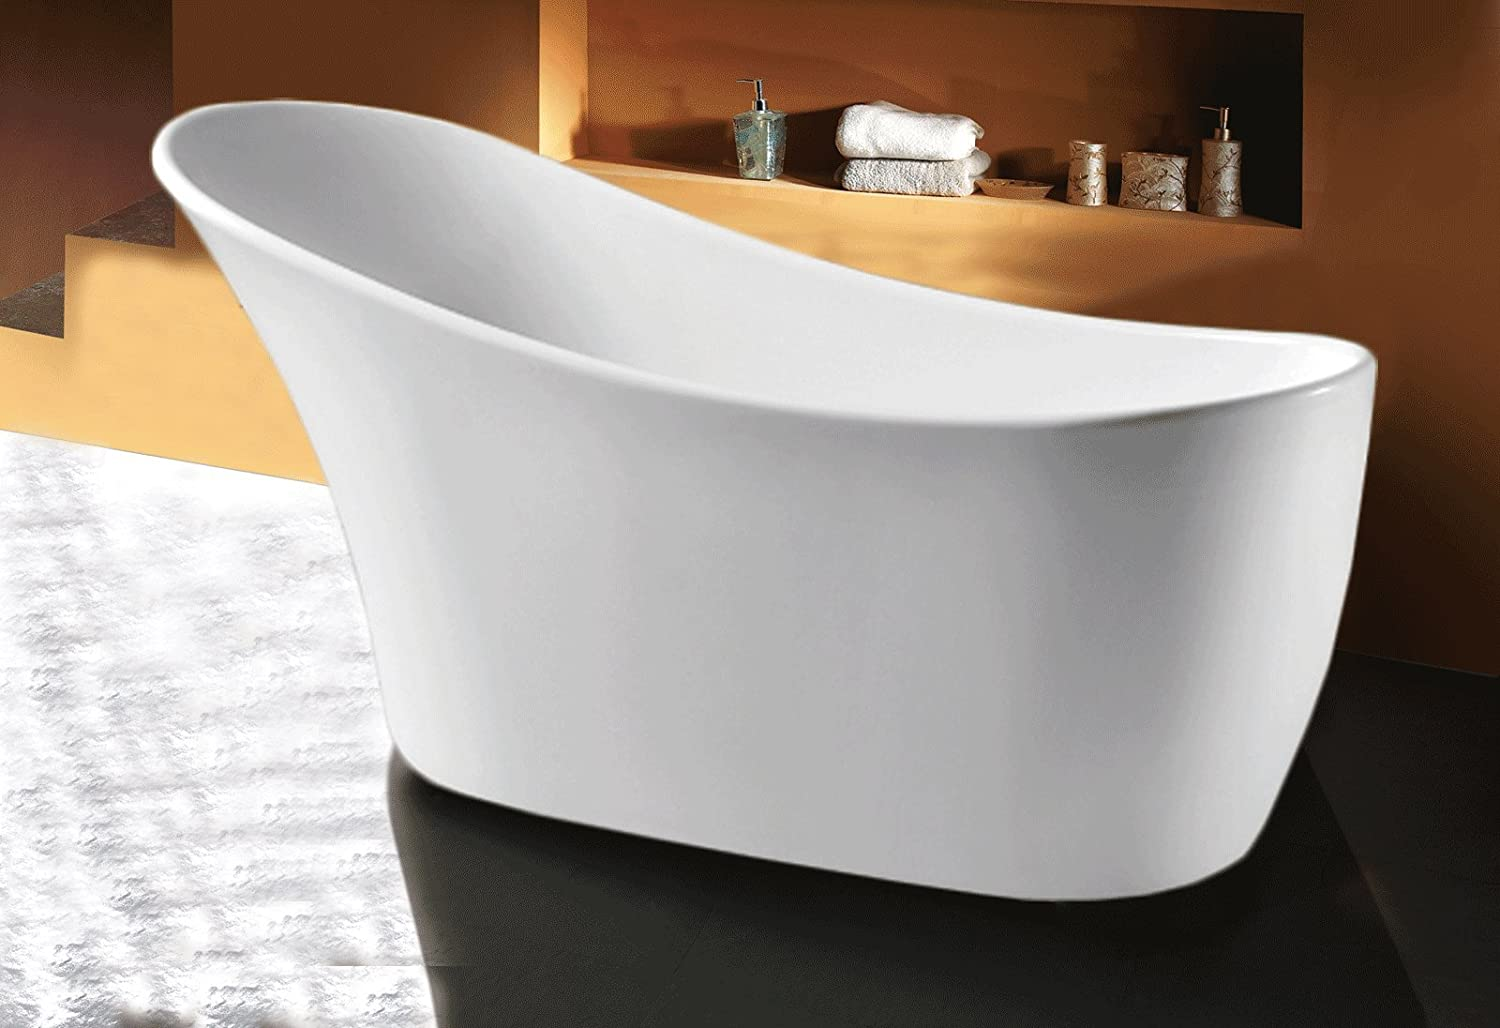 Top 10 best free standing acrylic bathtubs 2016 2017 on for Acrylic soaker tub